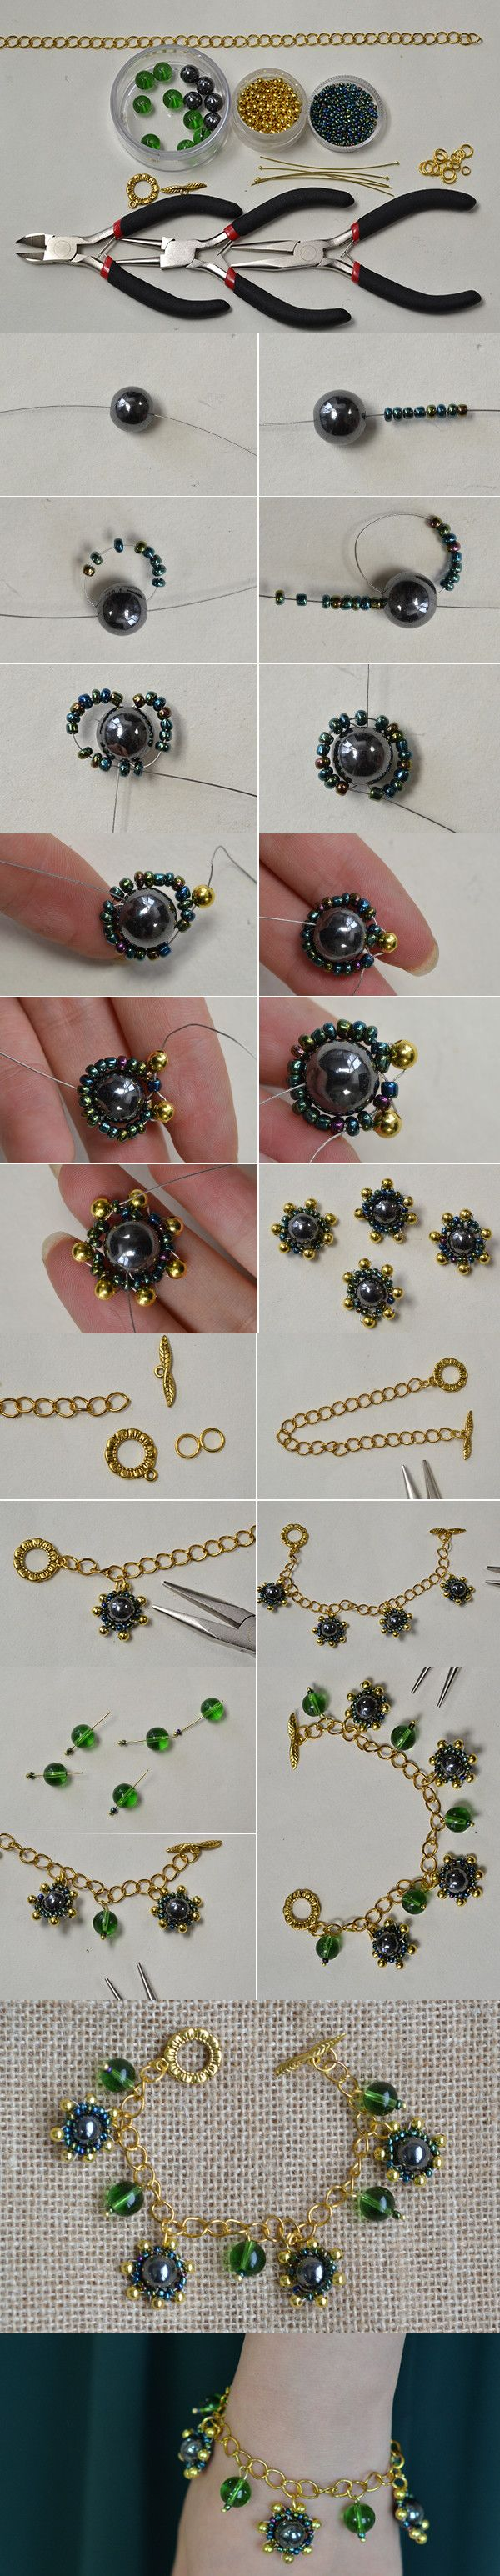 How to Make Your Own Green Chain Charm Bracelet Step by Step from LC.Pandahall.com